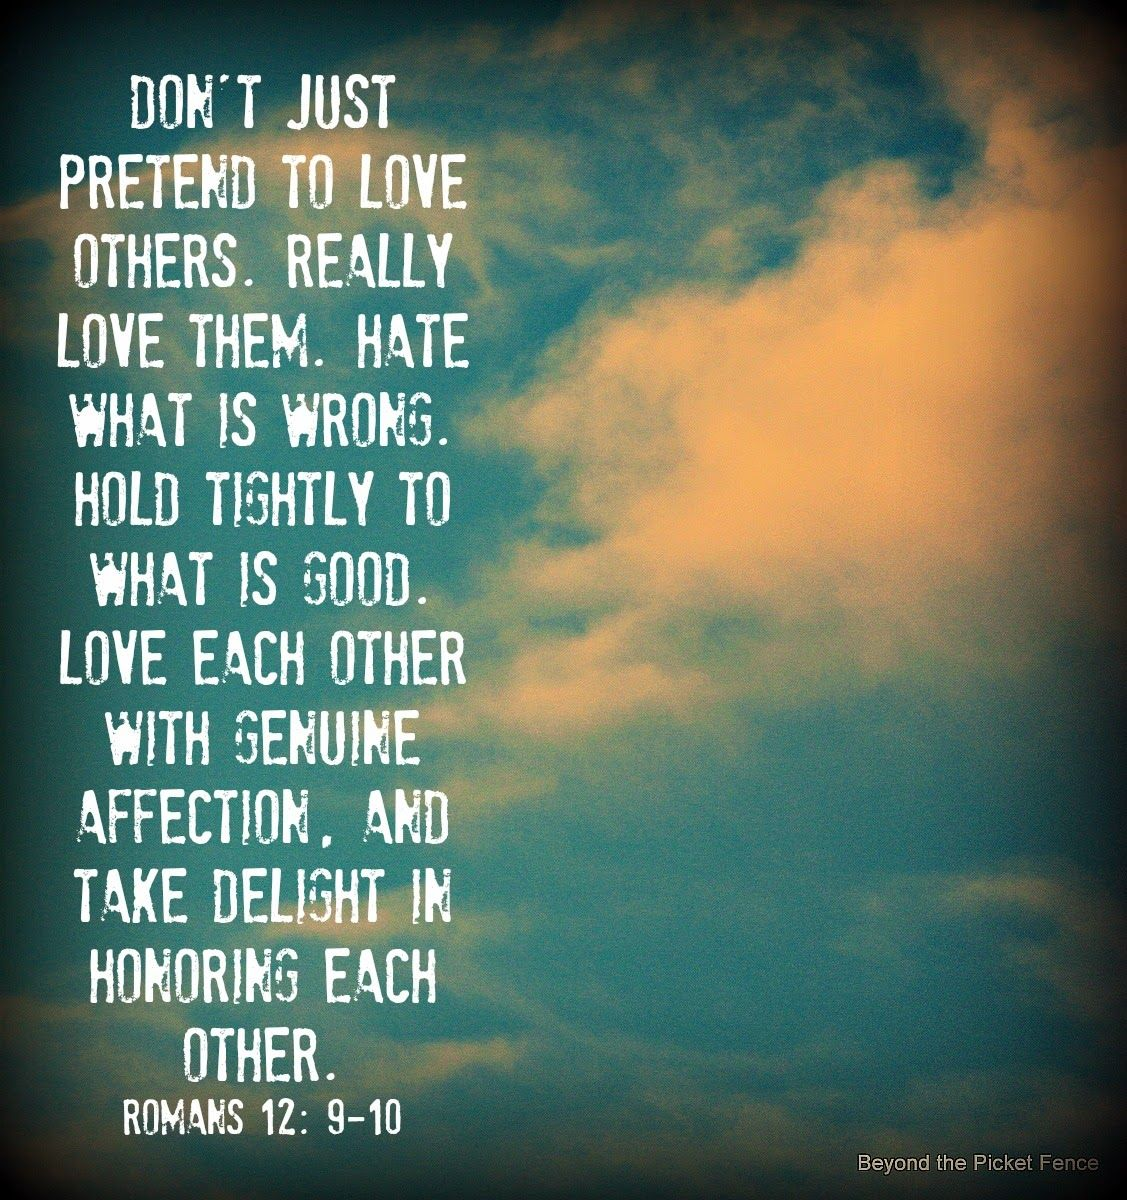 Bible verse loving others http bec4 beyondthepicketfence blogspot